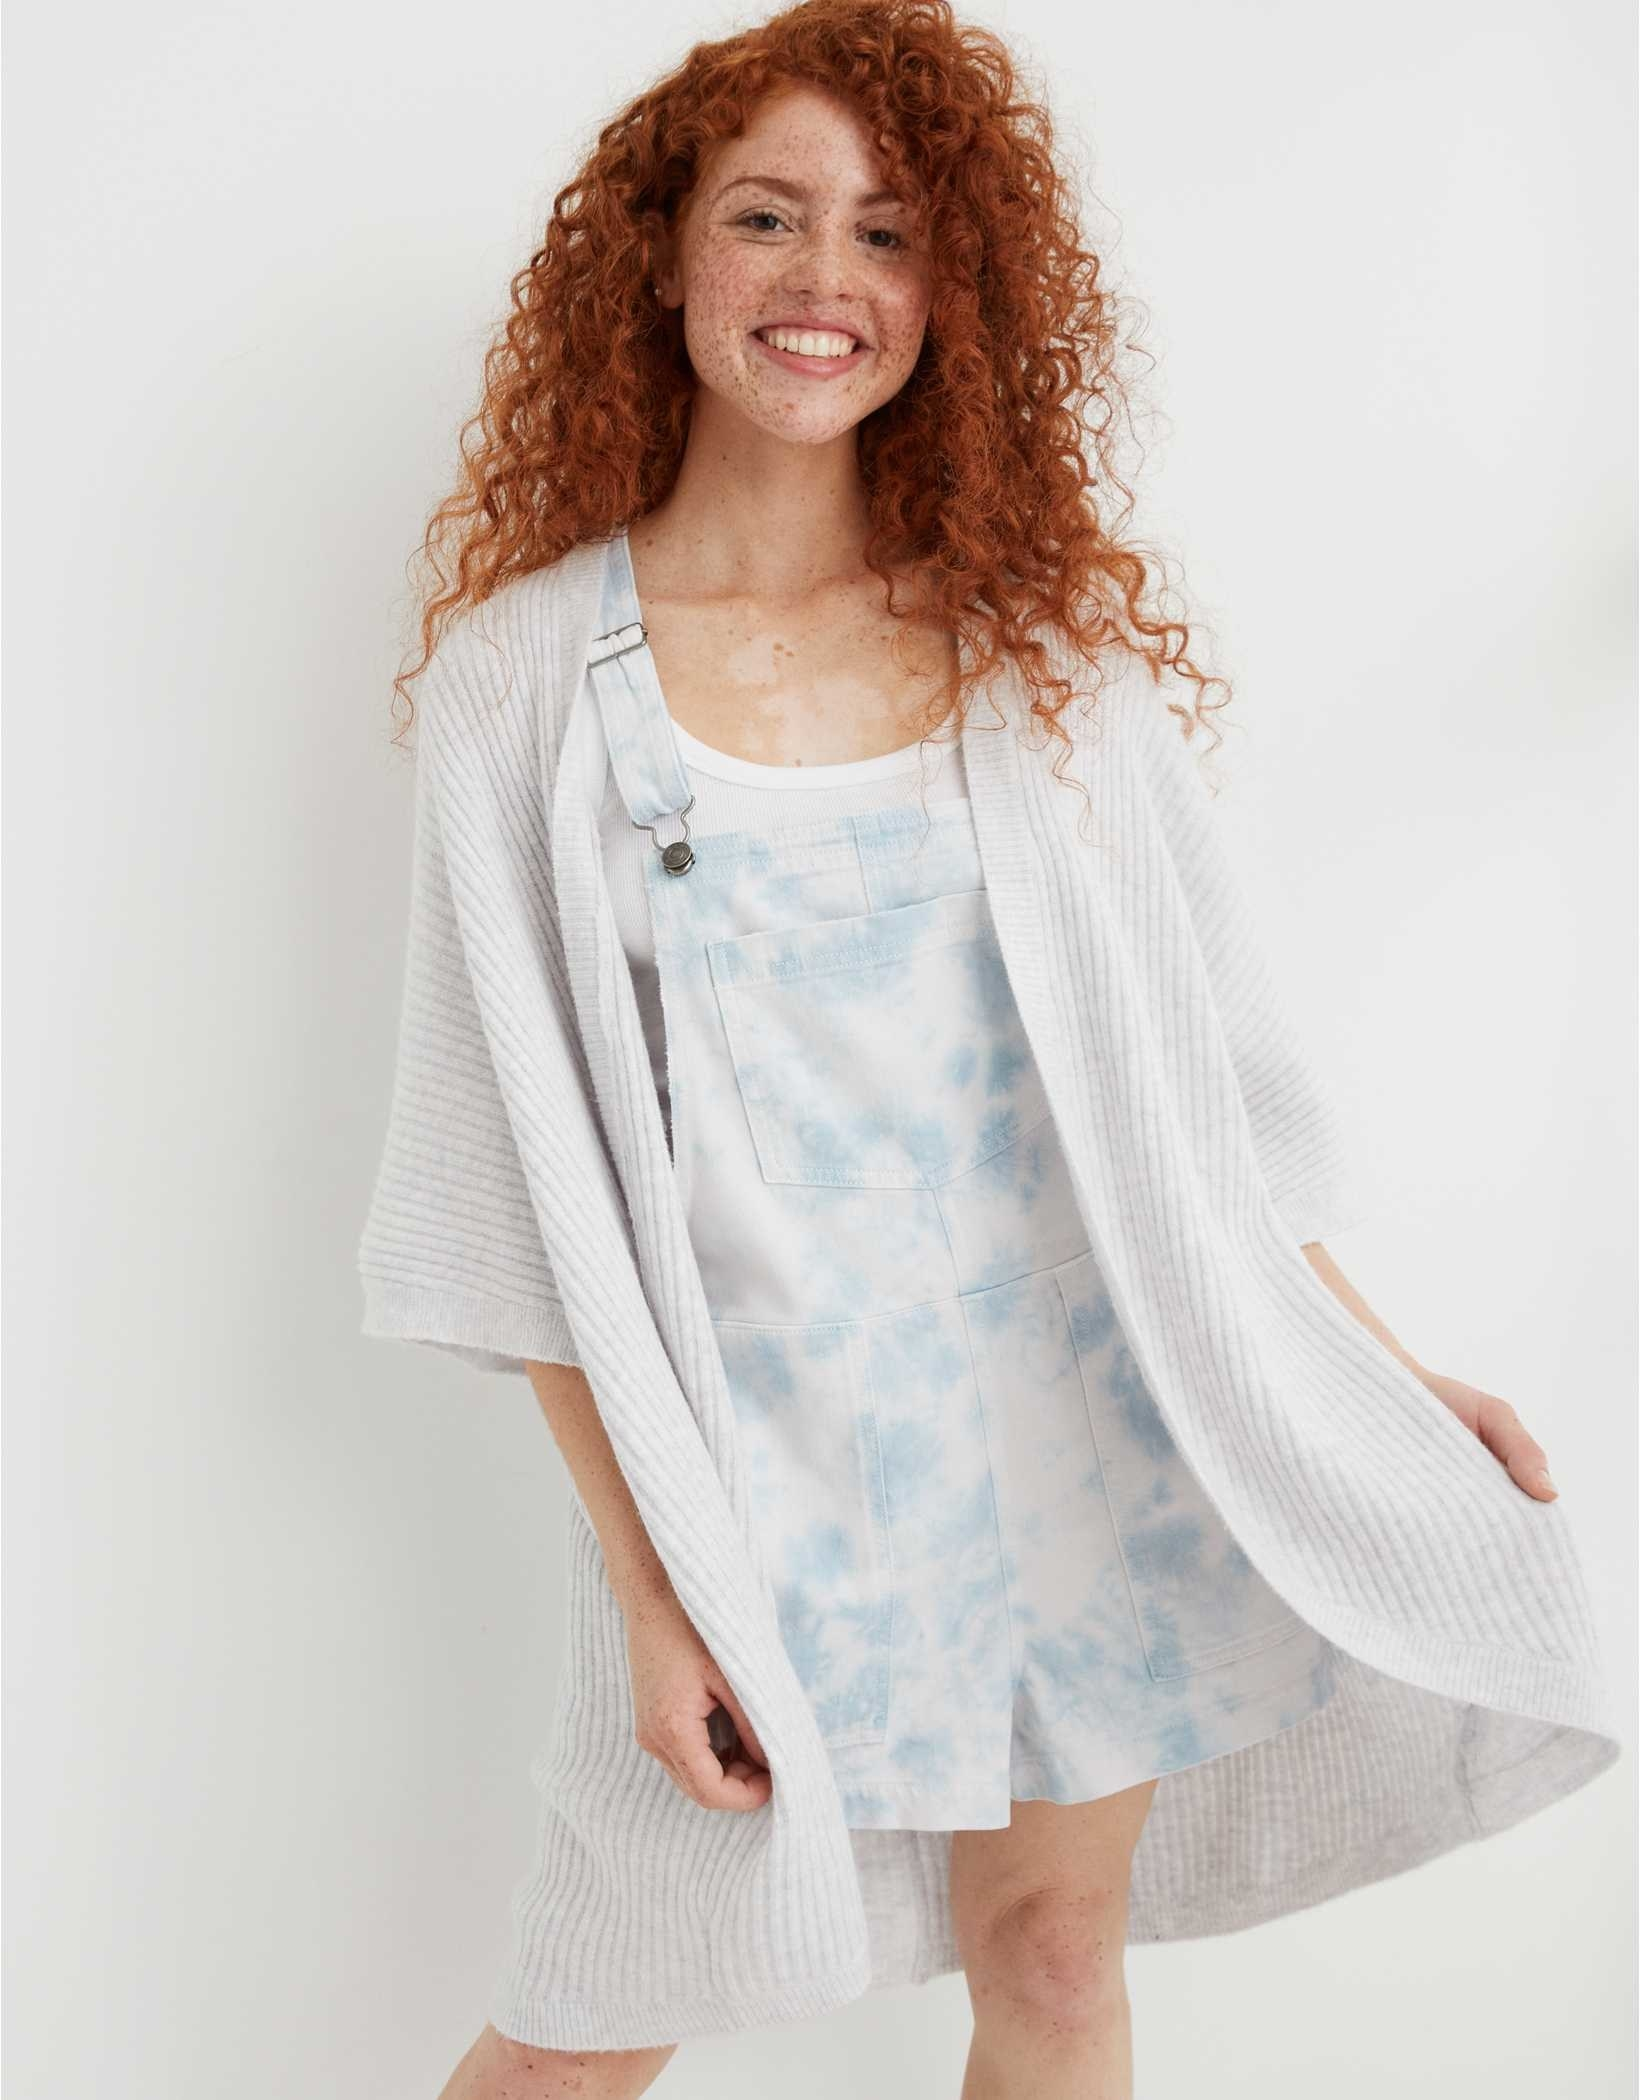 A model wearing the white sweater wrap over a pari of overalls